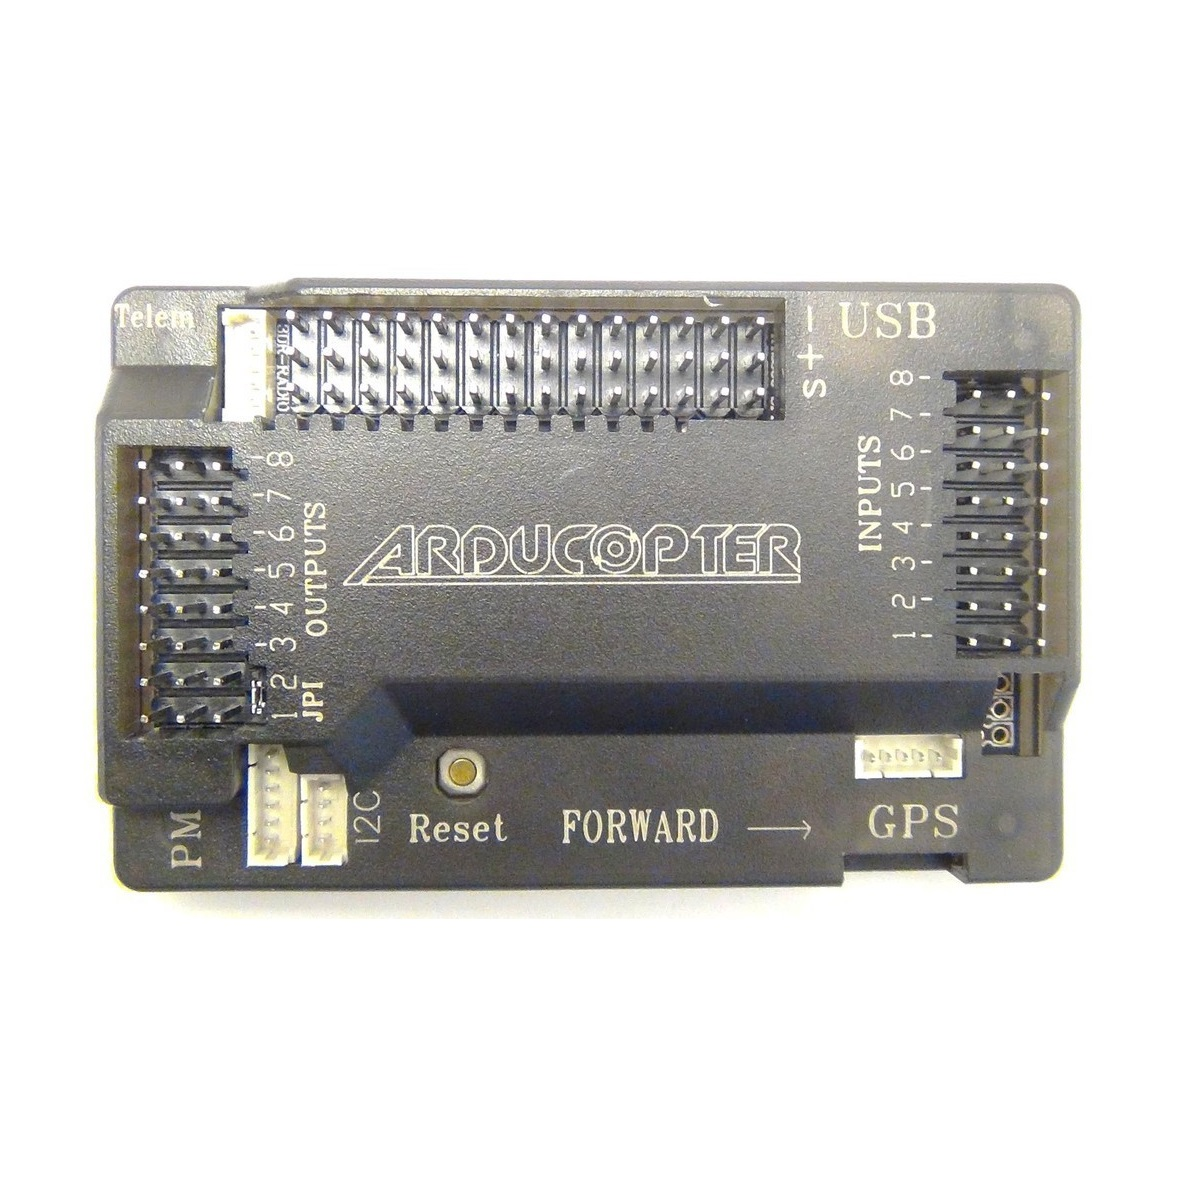 APM 2 8 Flight Controller with Built-in Compass - Robu in | Indian Online  Store | RC Hobby | Robotics